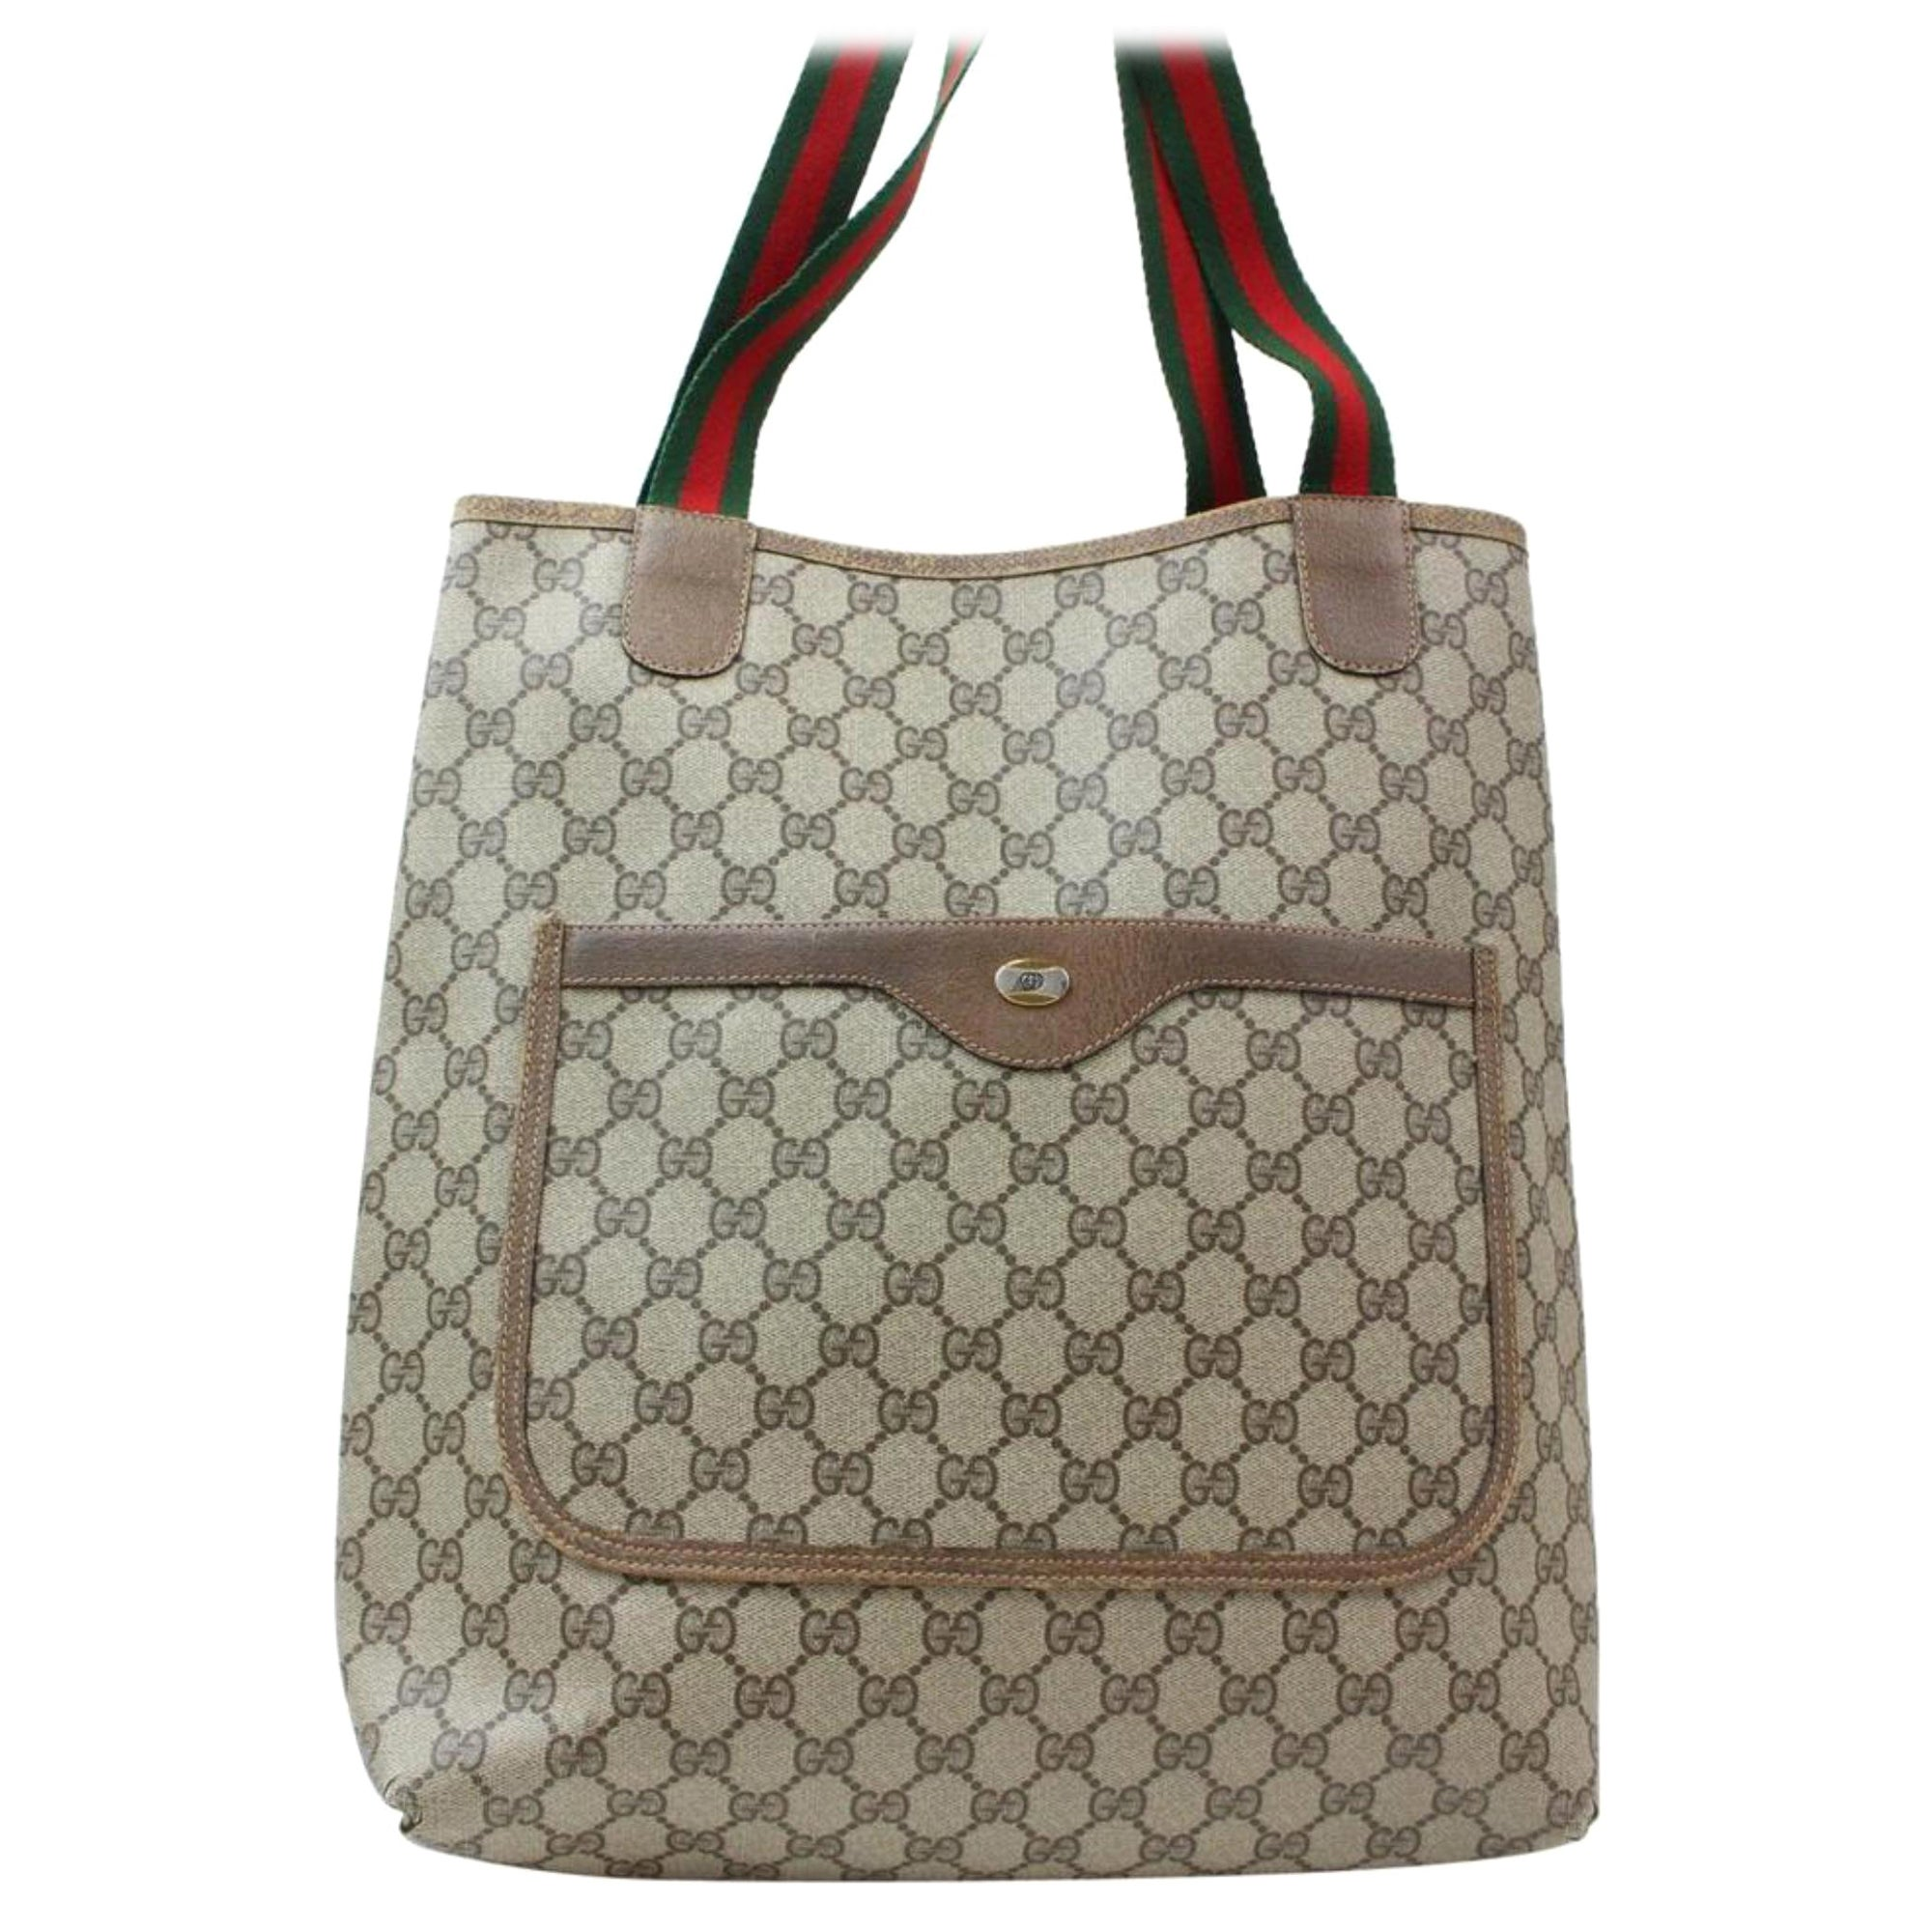 bbea8c4df3b1 Gucci Sherry Monogram Web Large Shopping 869413 Brown Coated Canvas Tote  For Sale at 1stdibs